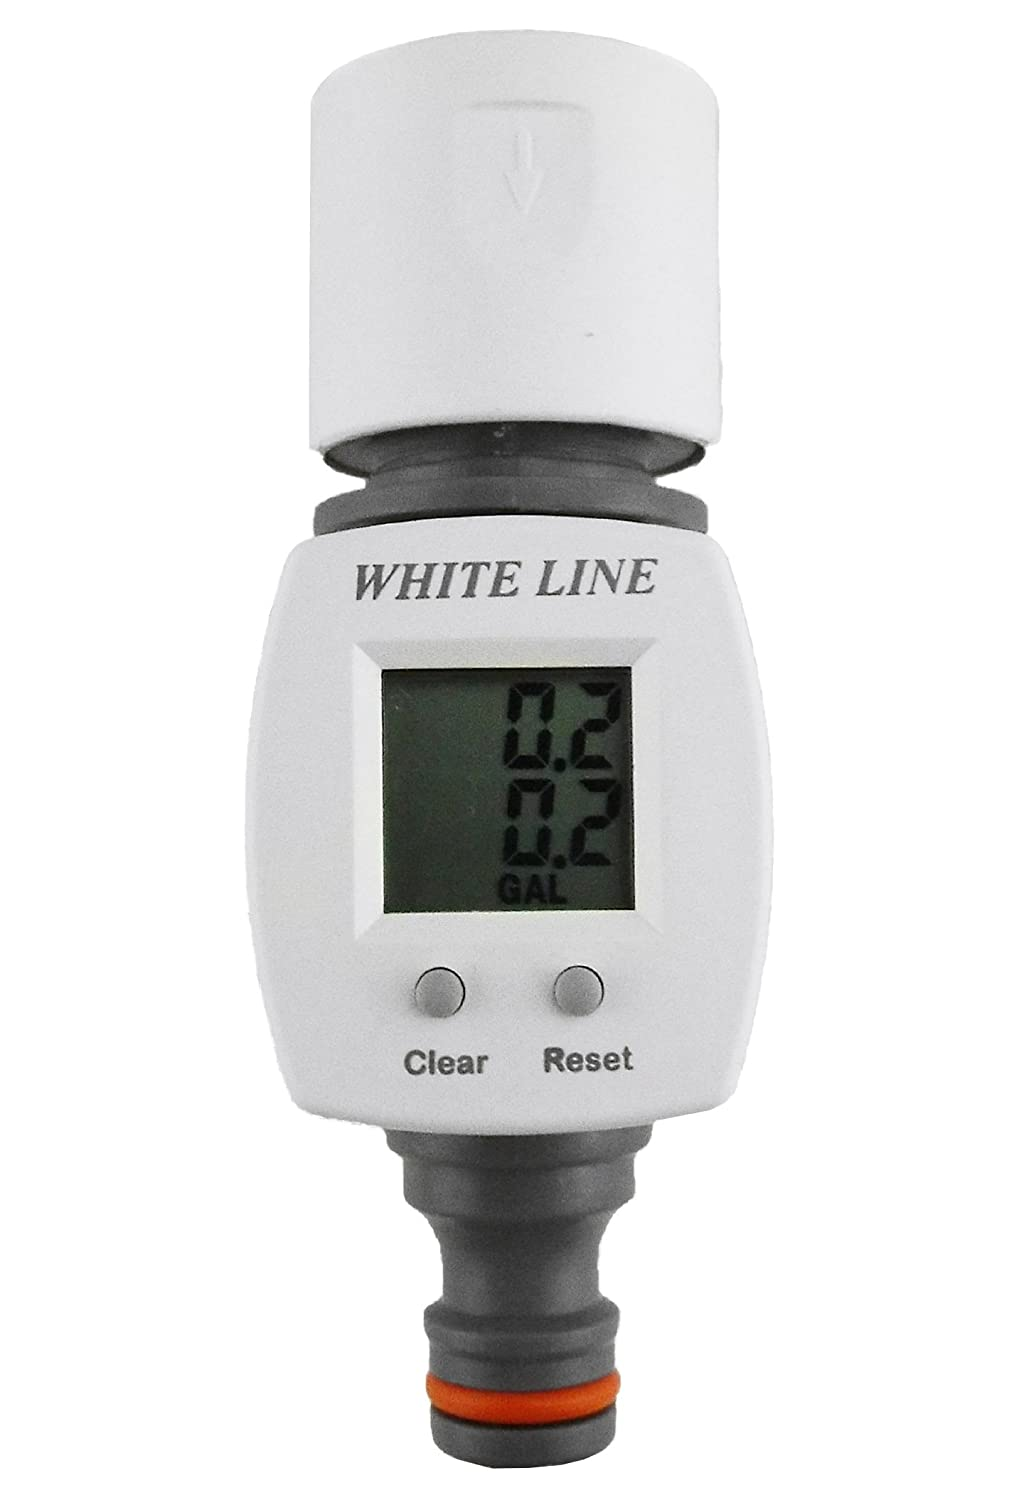 Digital Water meter with click-lock fittings for easy connection,measures up to 1000l BRADAS